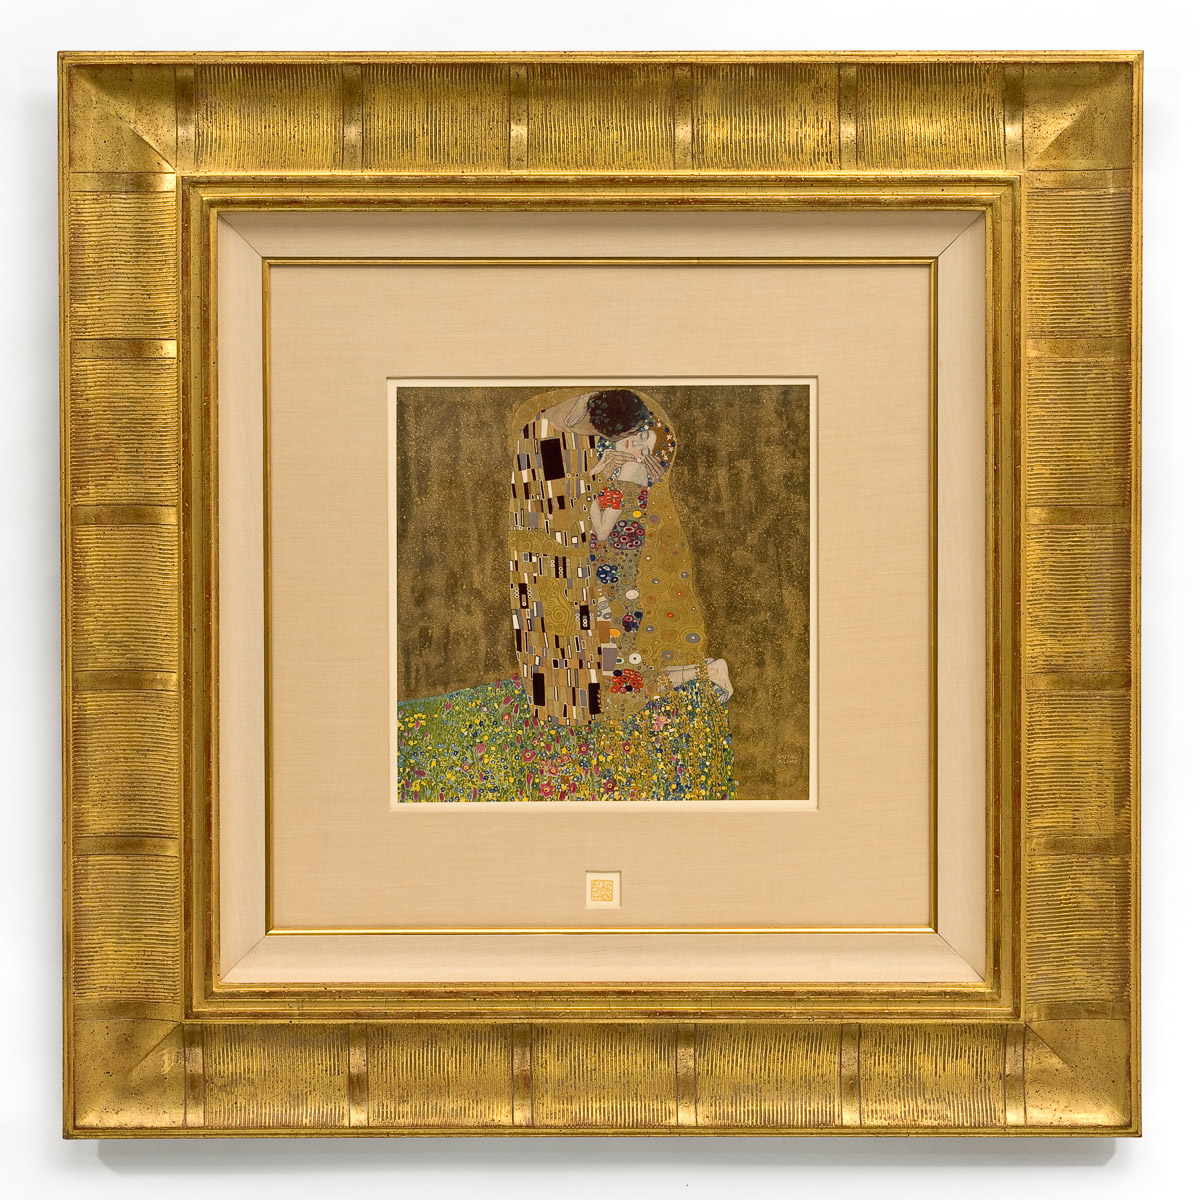 Artwork by: Gustav Klimt